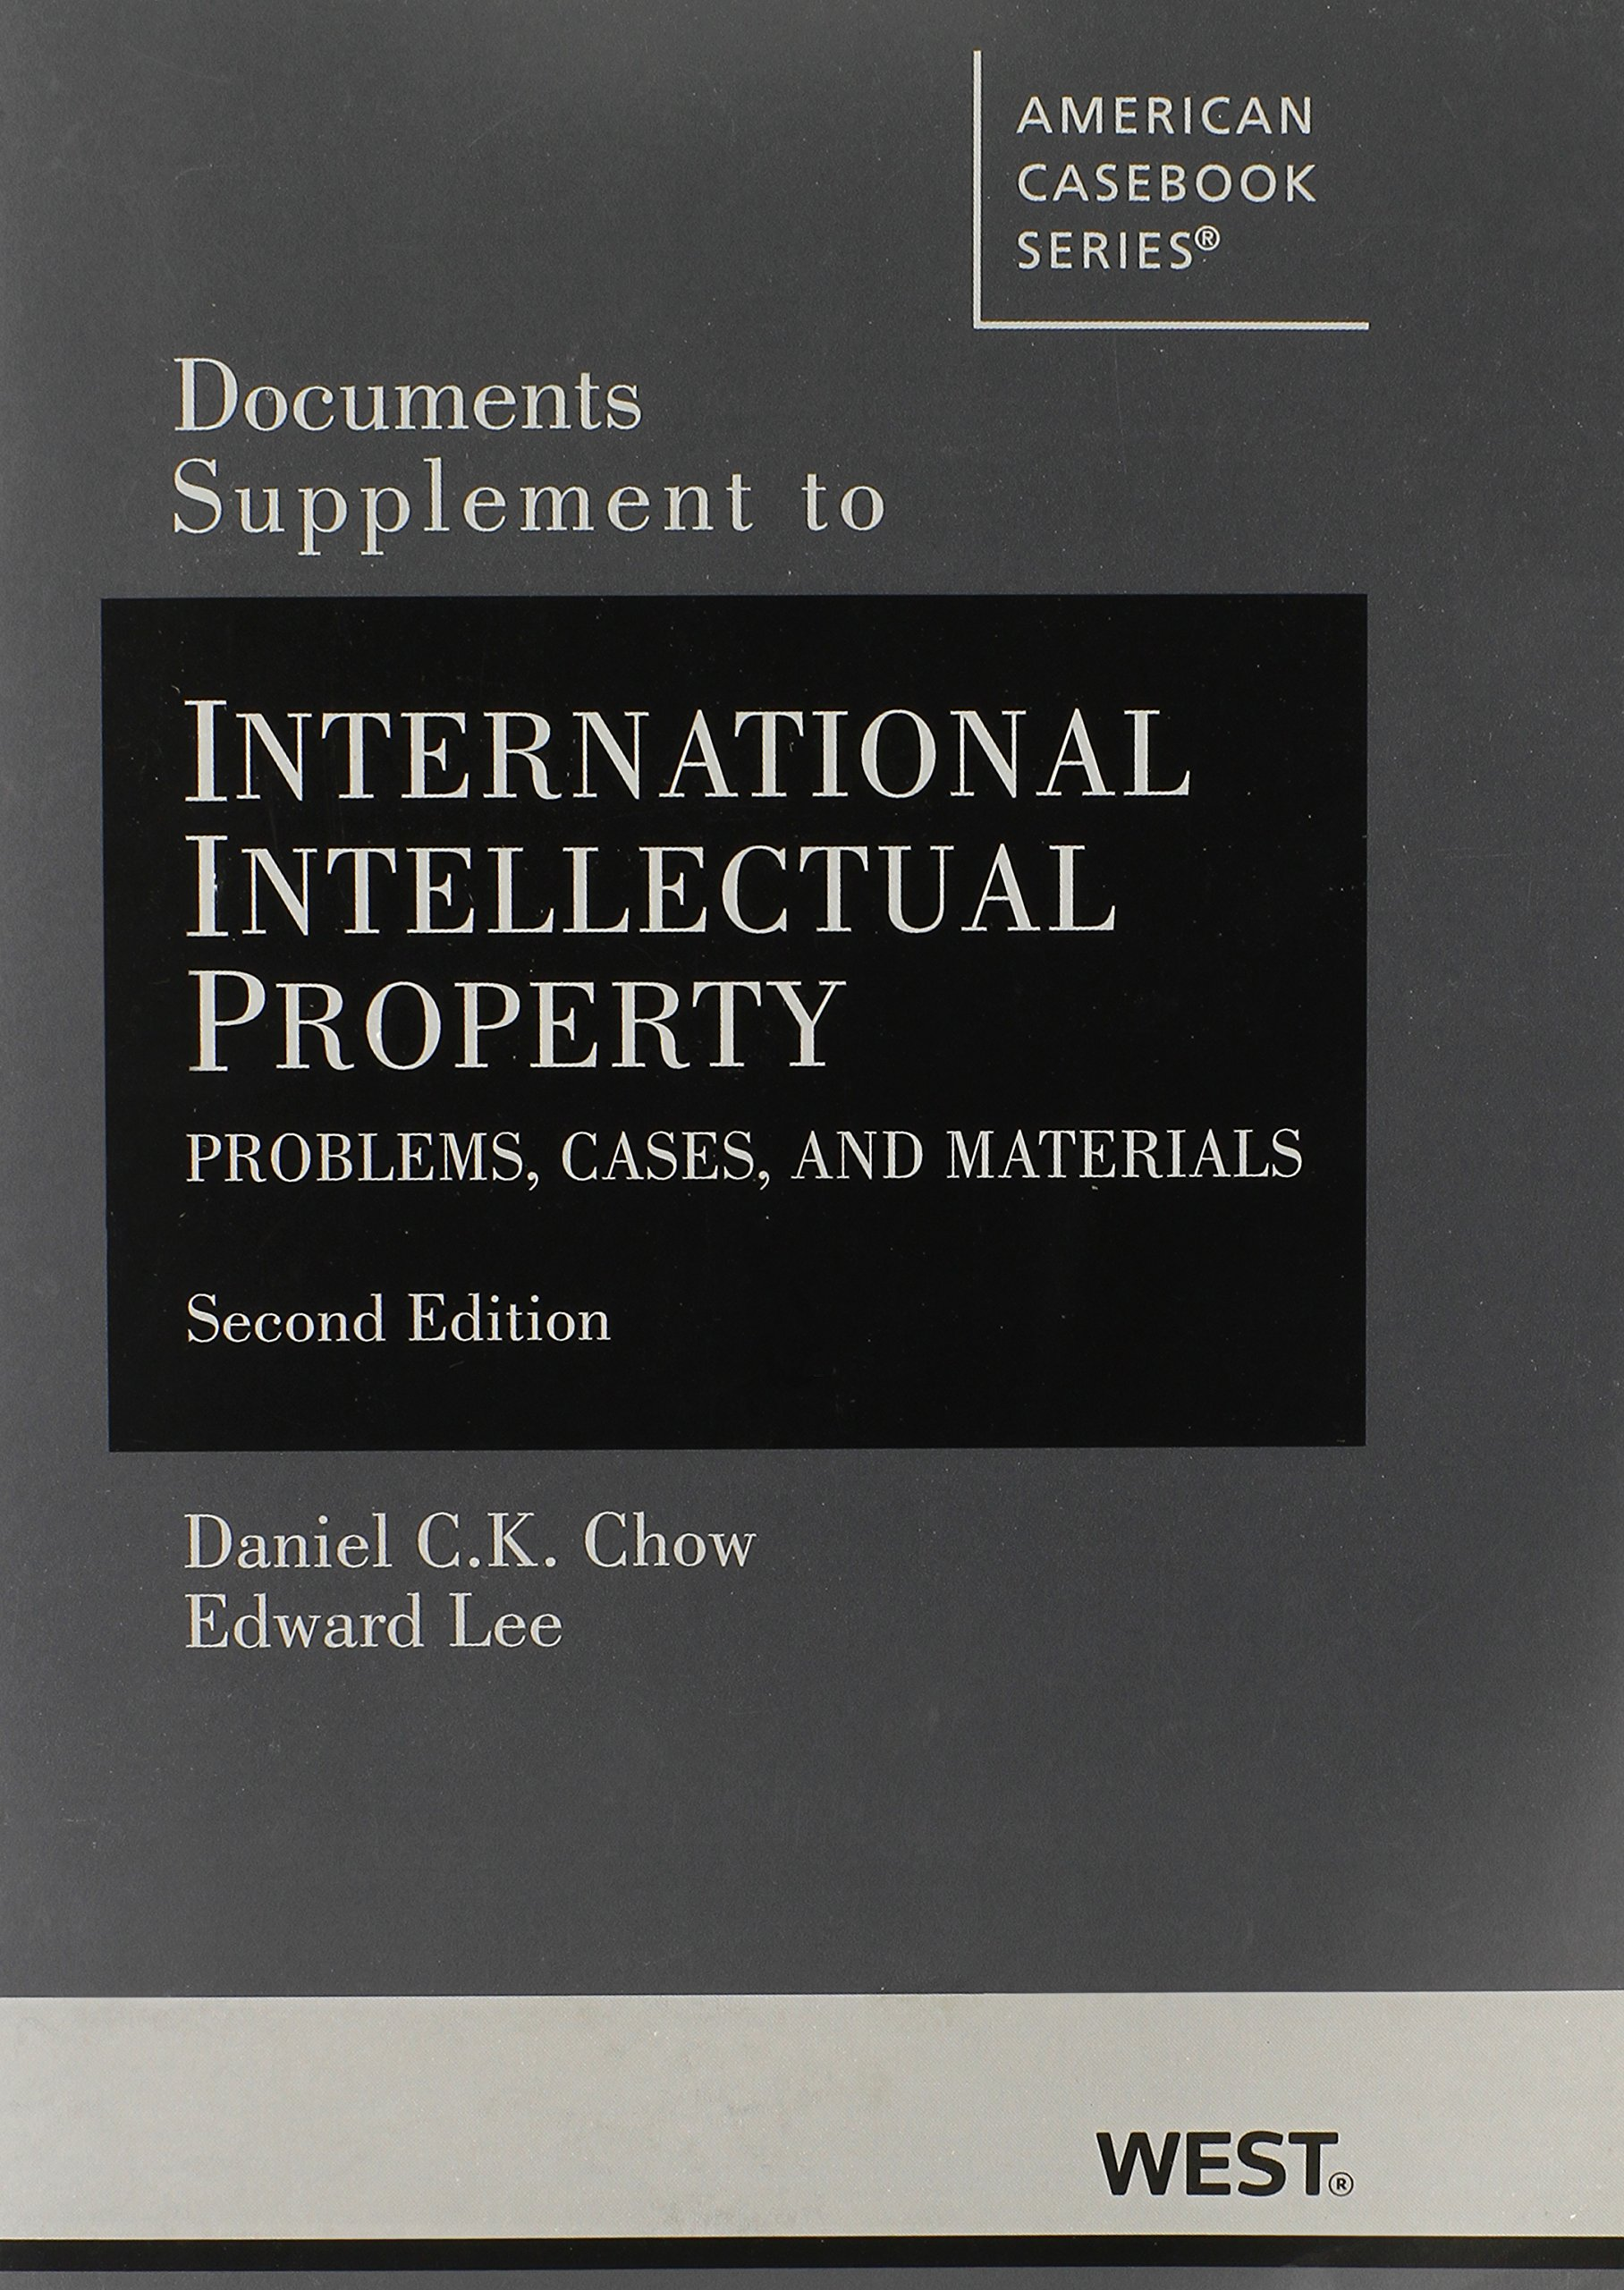 Download Documents Supplement To International Intellectual Property: Problems, Cases And Materials, 2d (American Casebook Series) 